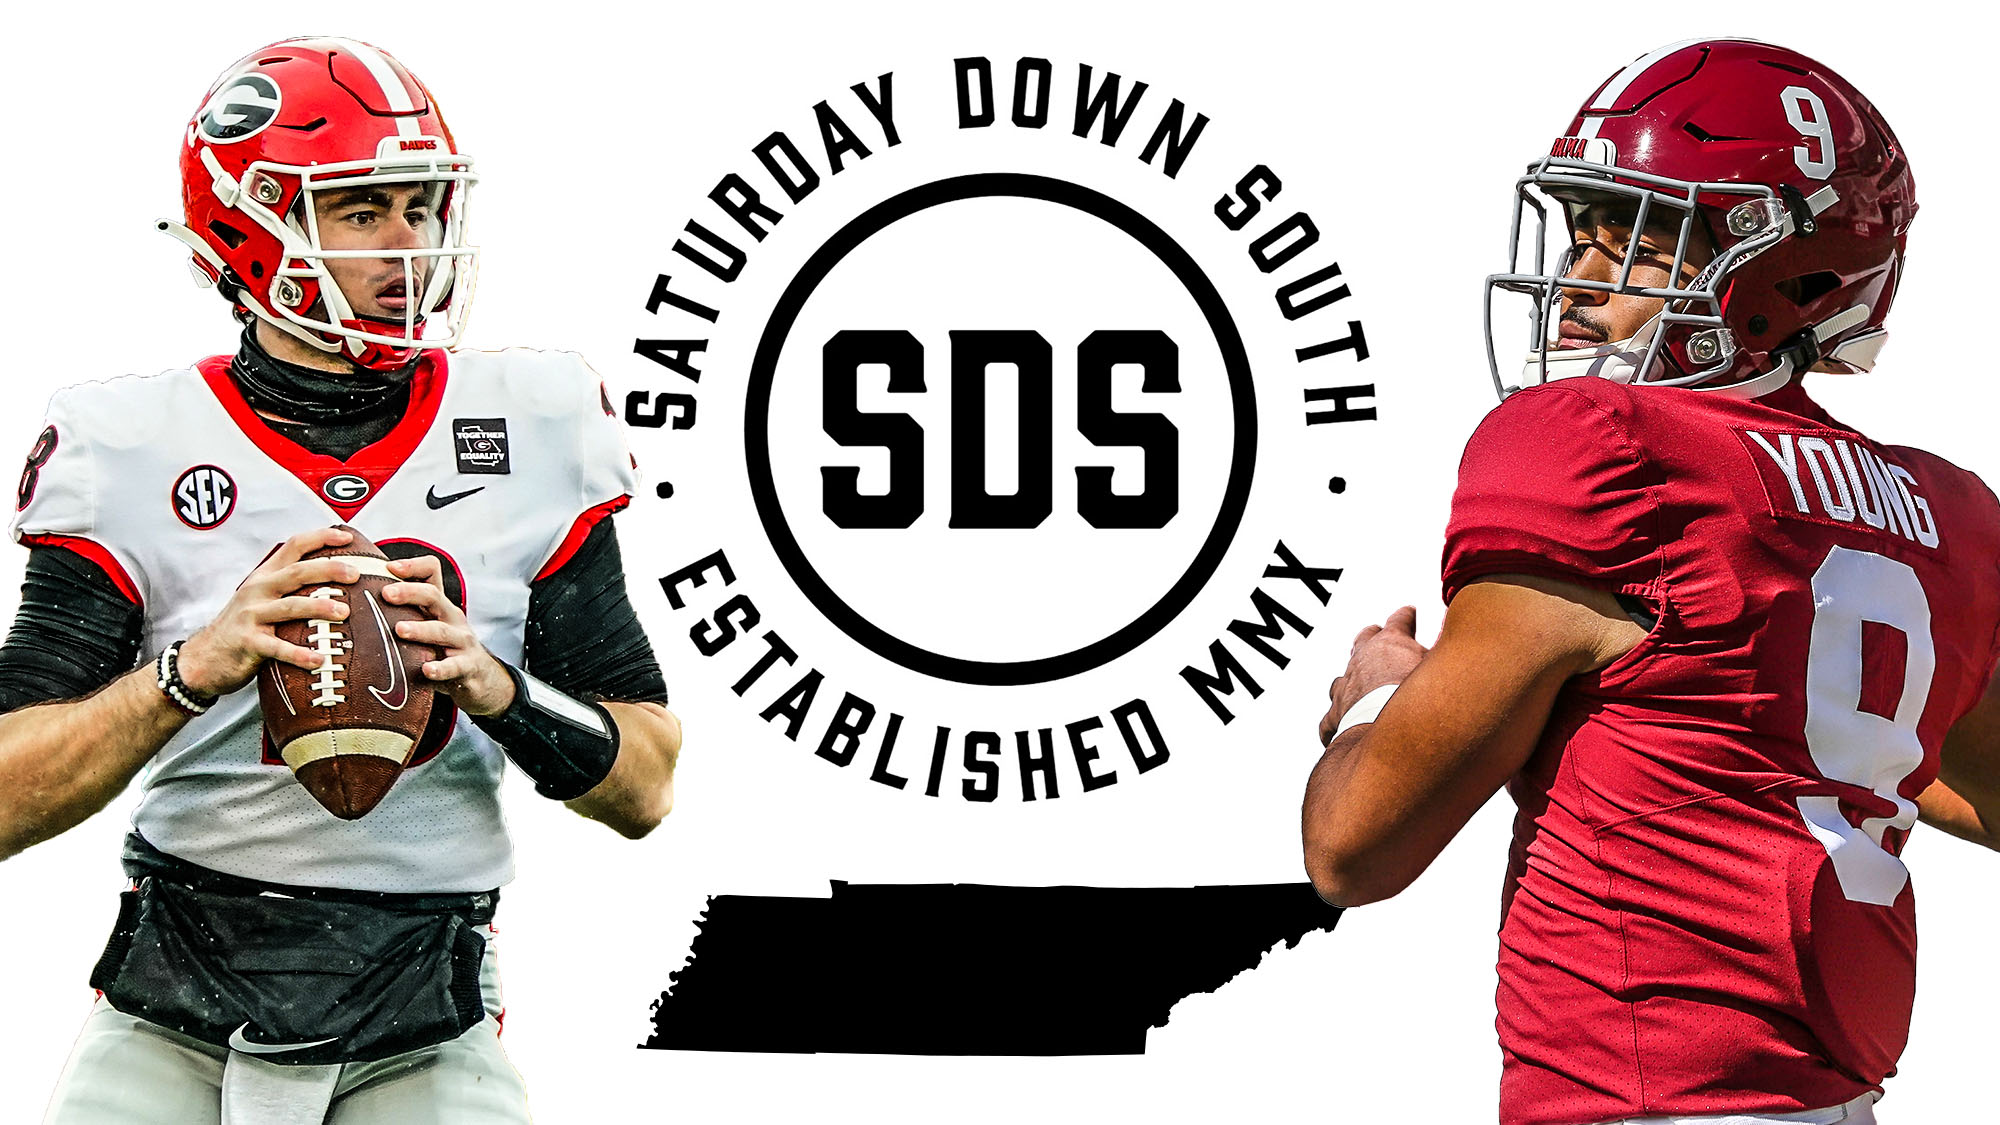 SEC Sports Betting States, JT Daniels, Bryce Young